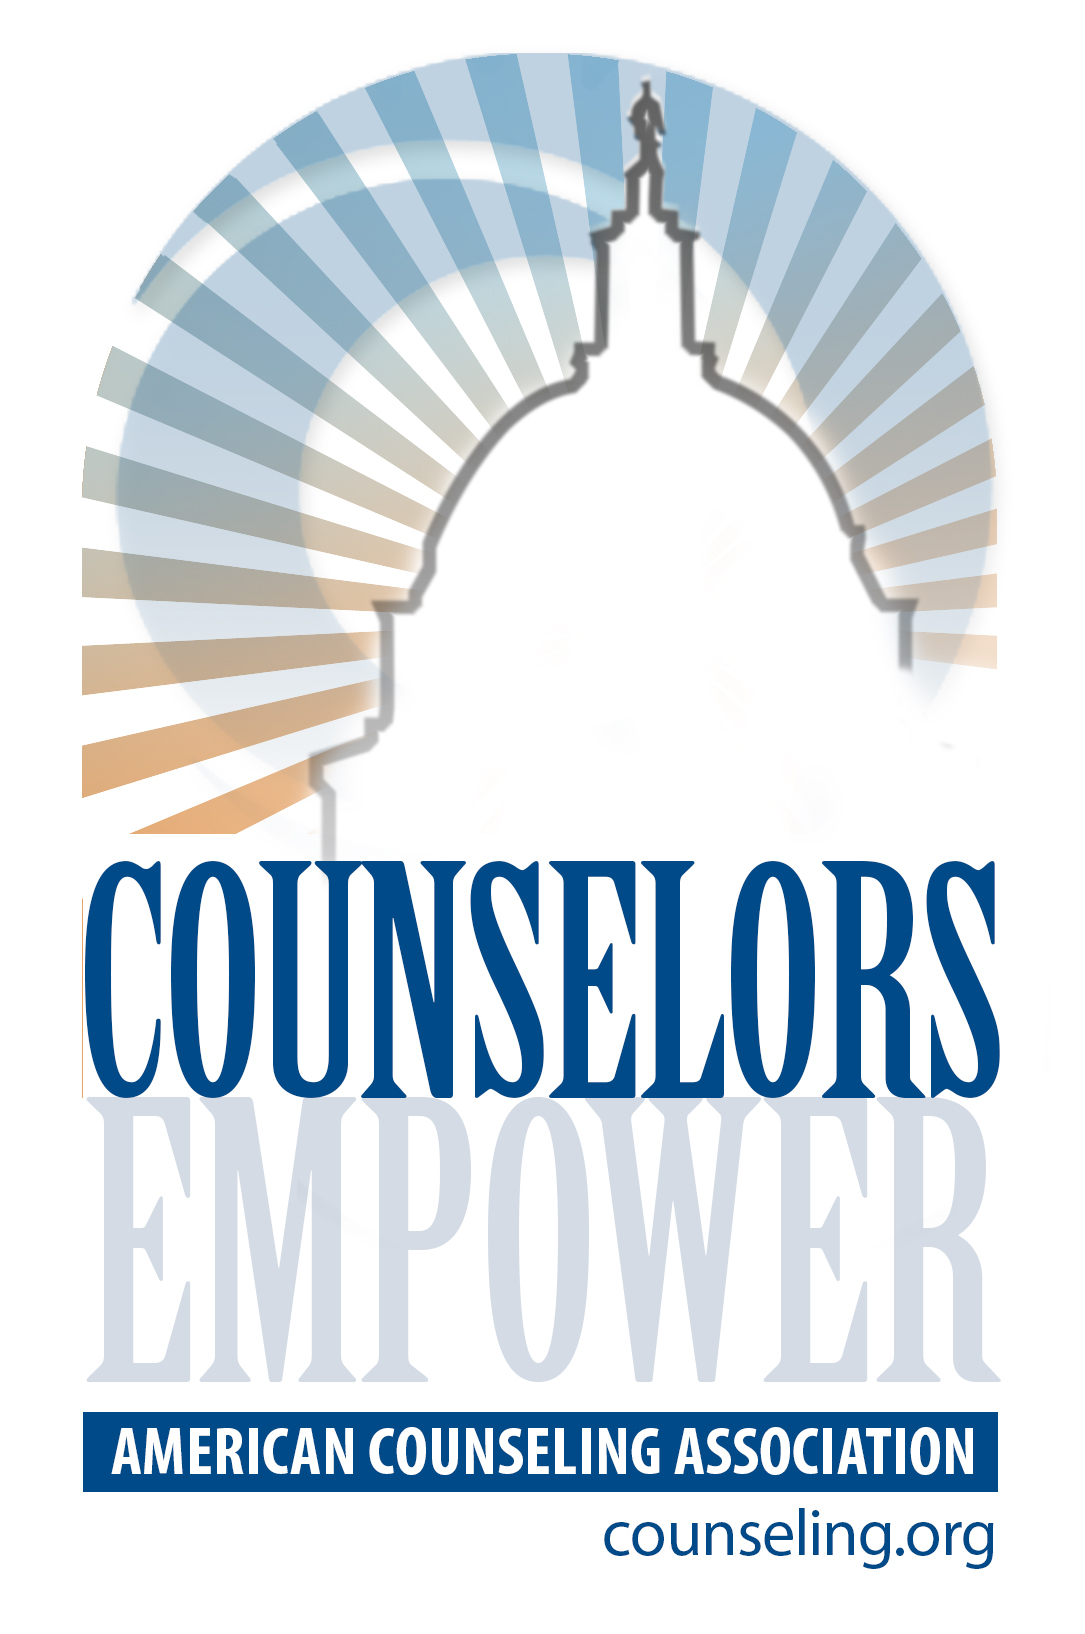 Add Your Voice to #CounselorsEmpower by July 23!